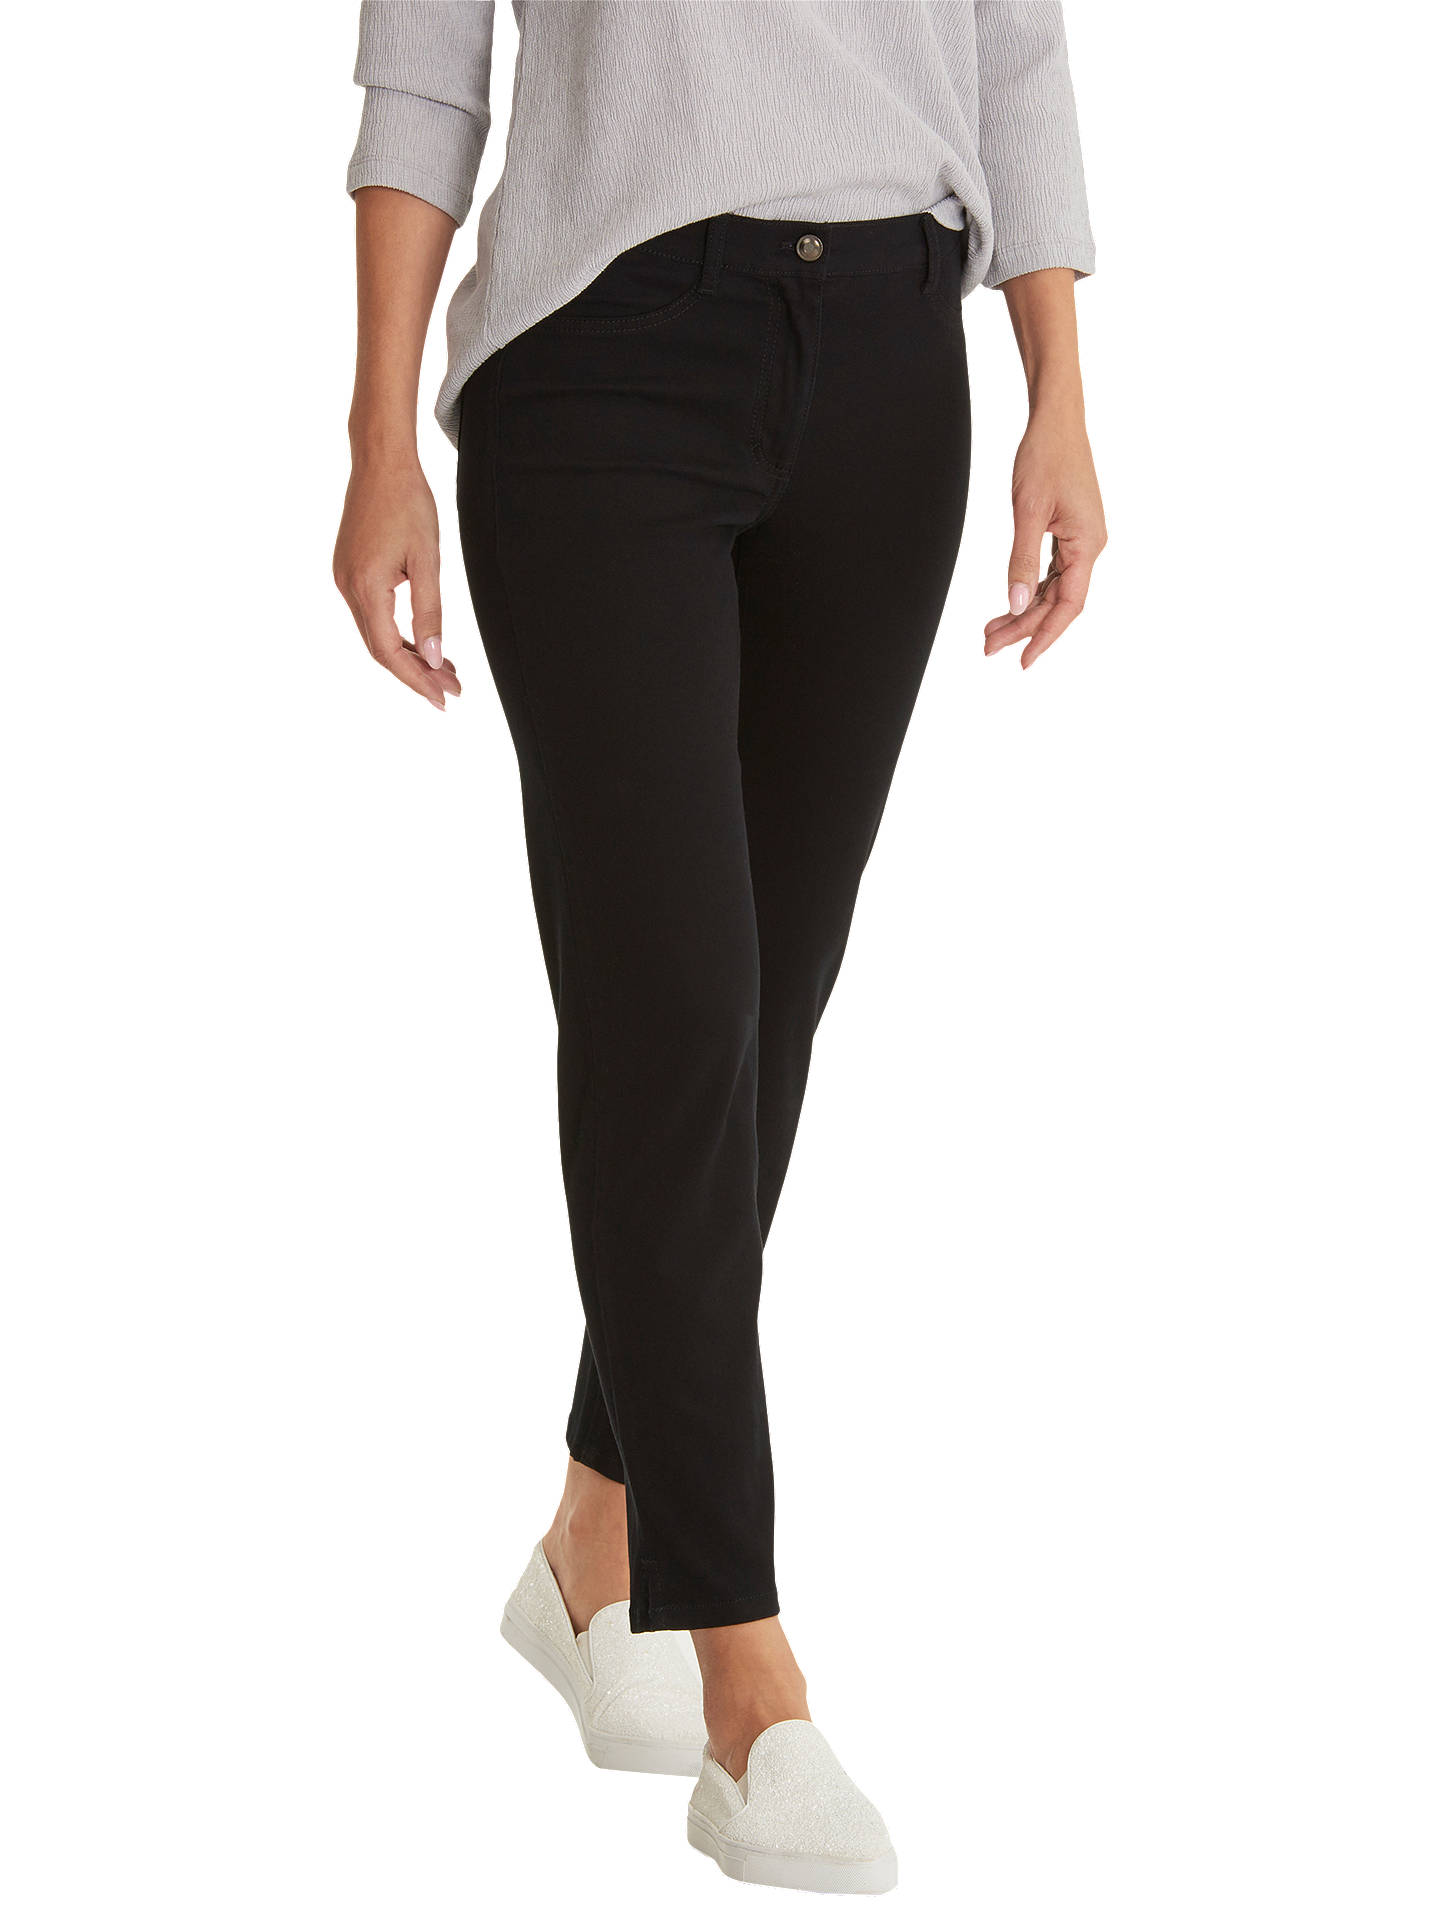 BuyBetty Barclay Slim Fit Jeans, Black, 16 Online at johnlewis.com